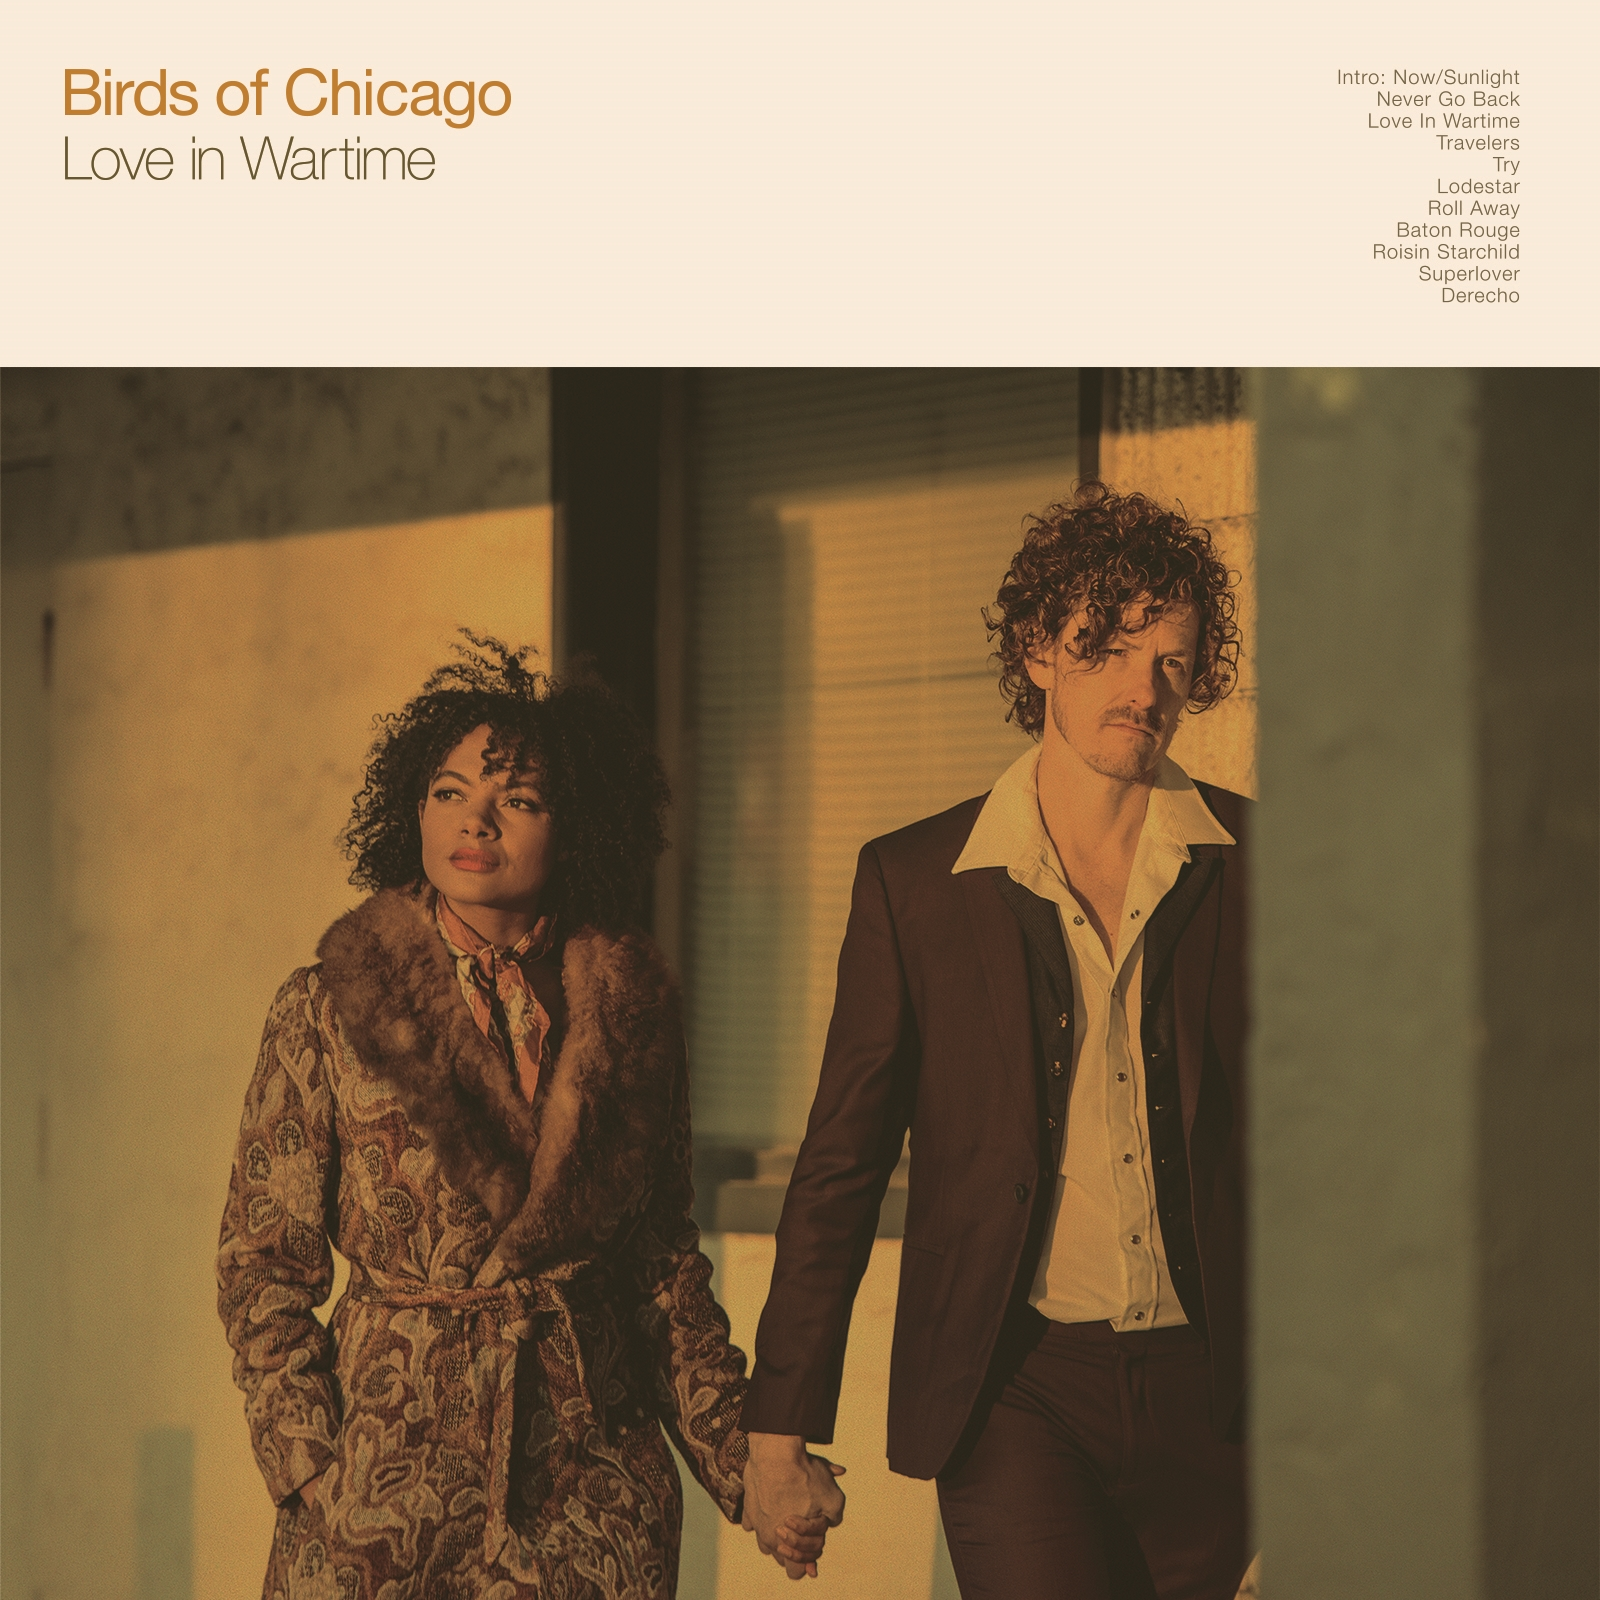 Three chords and the truth uk album review birds of chicago love birds of chicago start with a basic blueprint before an eclectic and innovative streak stretches the content to wherever you want it to go malvernweather